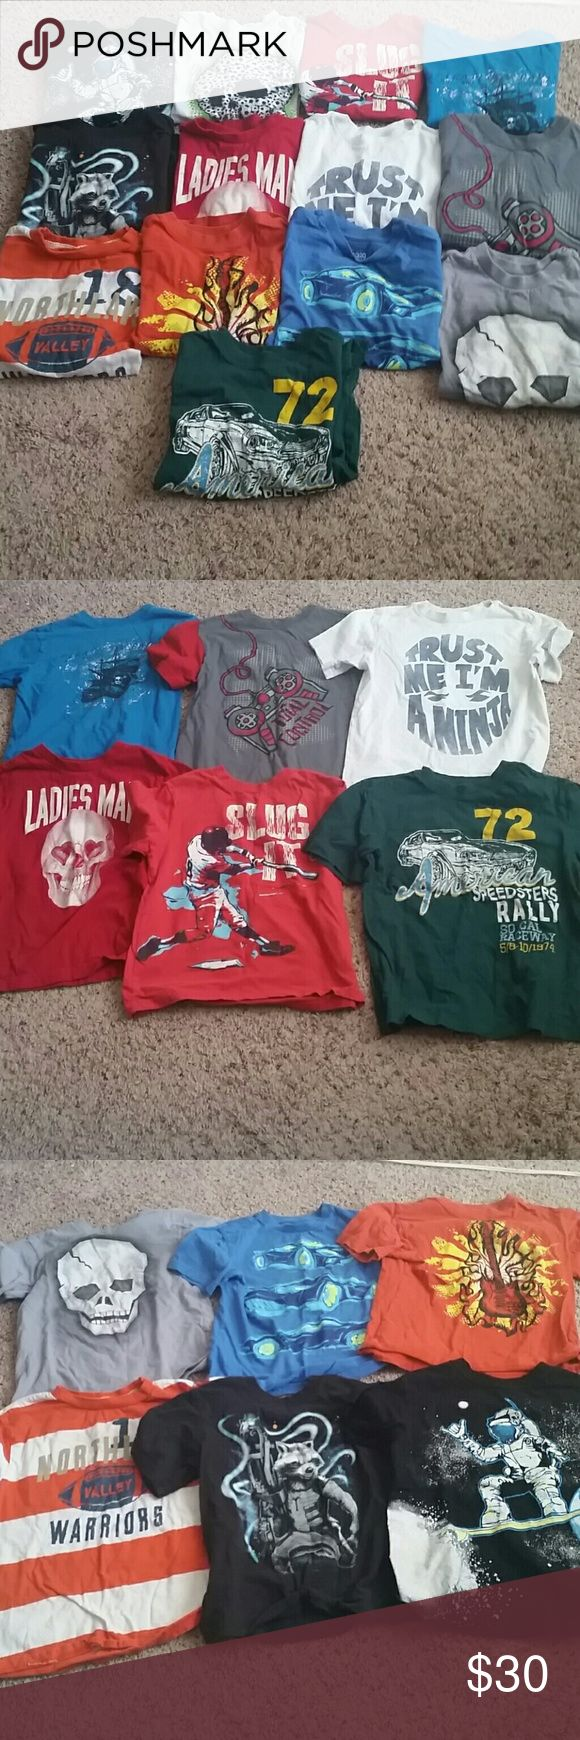 Little boys Childrens Place T shirt bundle 13 Small 5/6 Childrens place t shirts. All in excellent condition, no rips or stains except white with skulls with neon green, has small stains on bottom right of shirt as shown in picture. All other shirts are stain free, of you'd like additional pics, please ask. Perfect for spring and summer! Reasonable offers accepted, smoke free, pet friendly home. Children's Place Shirts & Tops Tees - Short Sleeve